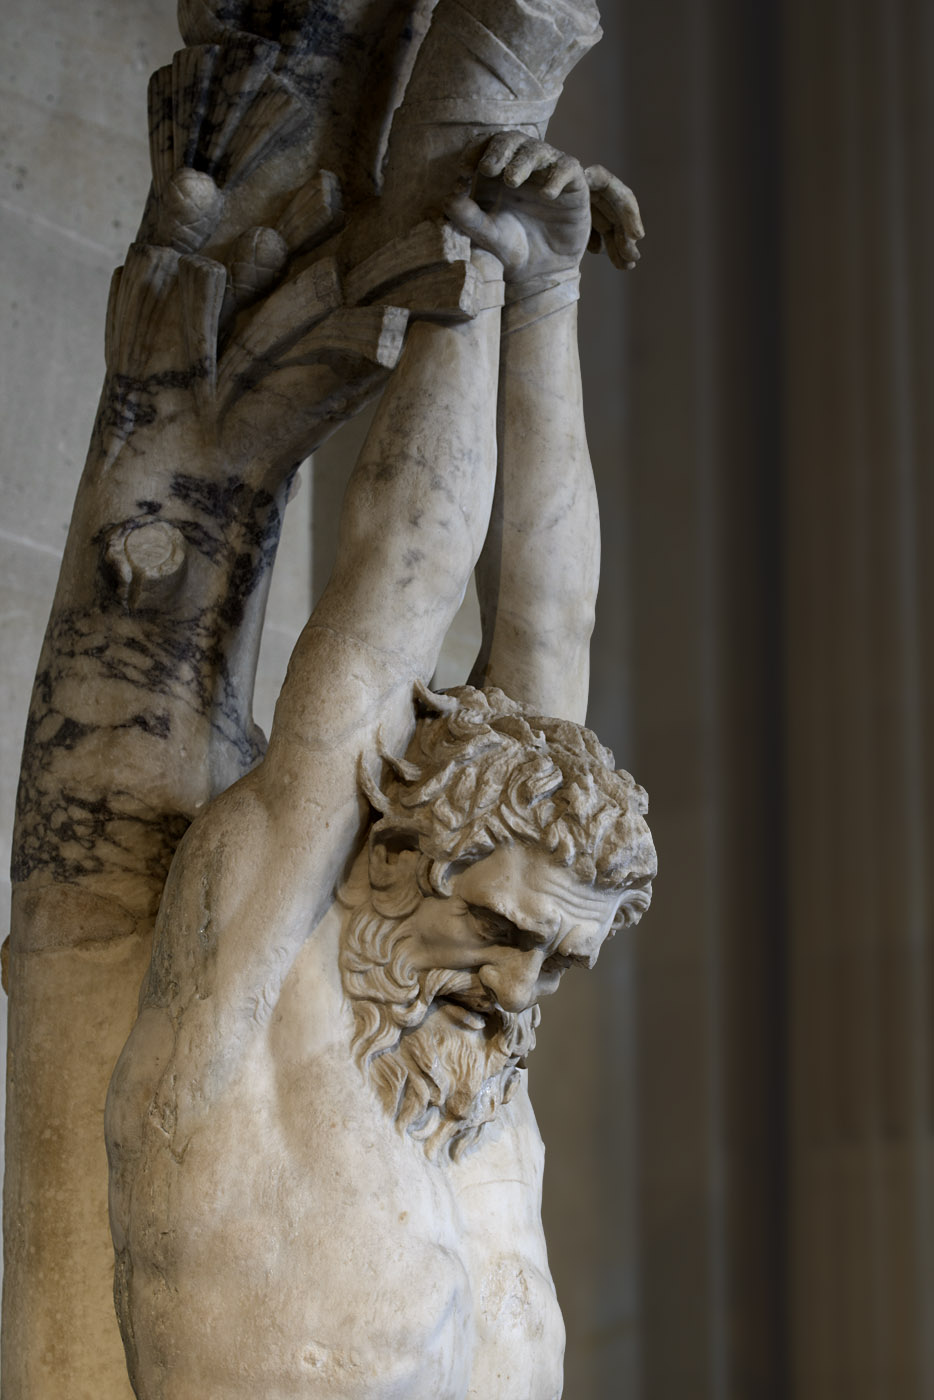 Punishment of Marsyas (close-up). Marble. Roman work of the 1st—2nd cent. CE. Inv. No. MR 267 / Ma 542. Paris, Louvre Museum